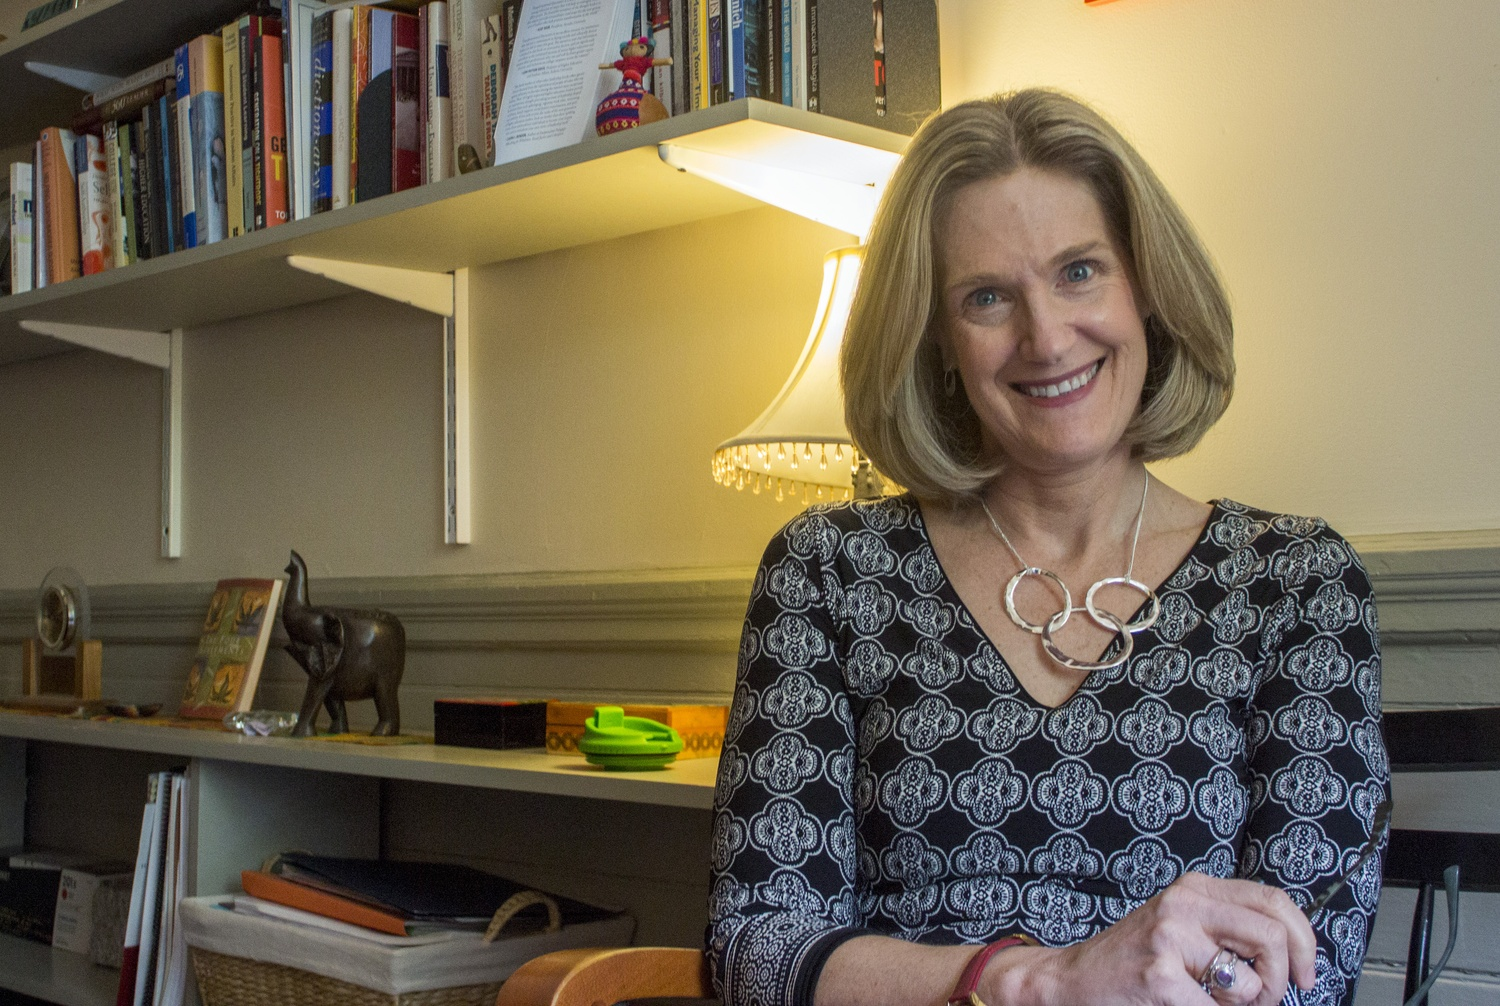 Katherine G. O'Dair, Dean of Students, heads the Office for Student Life.